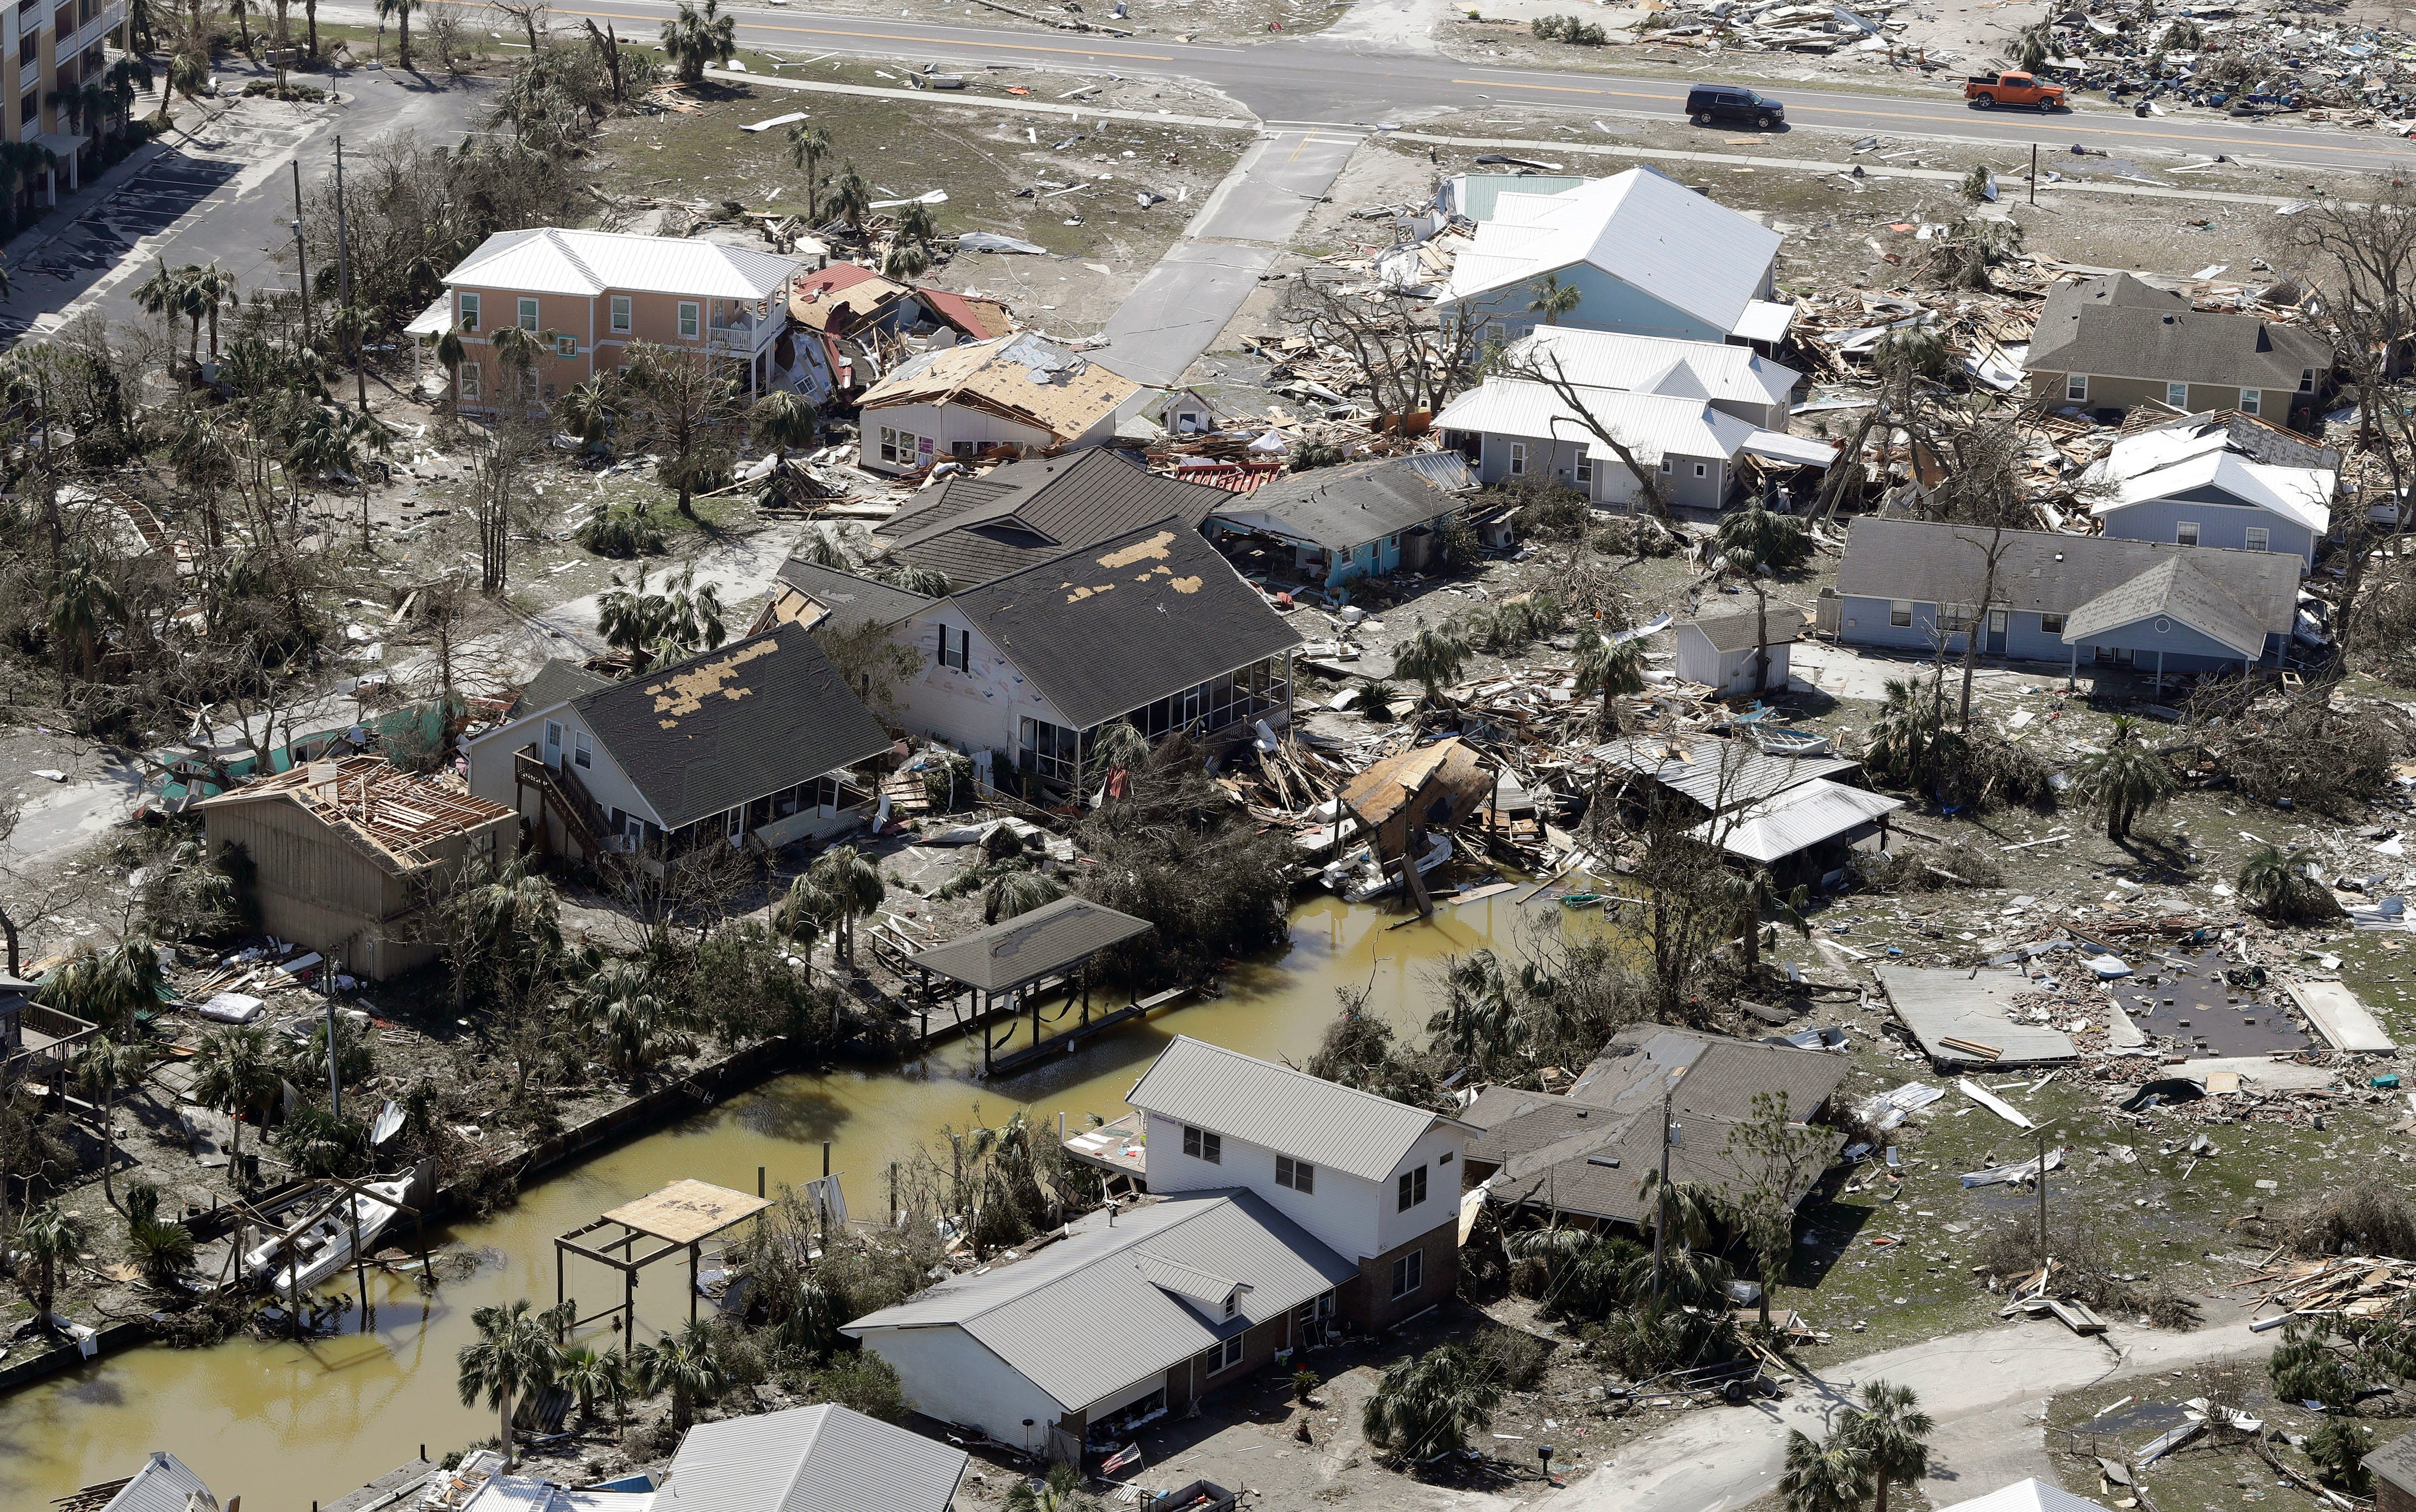 MEXICO BEACH, FL - OCTOBER 11: Debris from homes destroyed by Hurricane Michael litters the ground on October 11, 2018, in Mexico Beach, Florida. The hurricane hit the panhandle area with category 4 winds causing major damage. (Photo by Chris O'Meara-Pool/Getty Images) ORG XMIT: 775241167 ORIG FILE ID: 1051907864